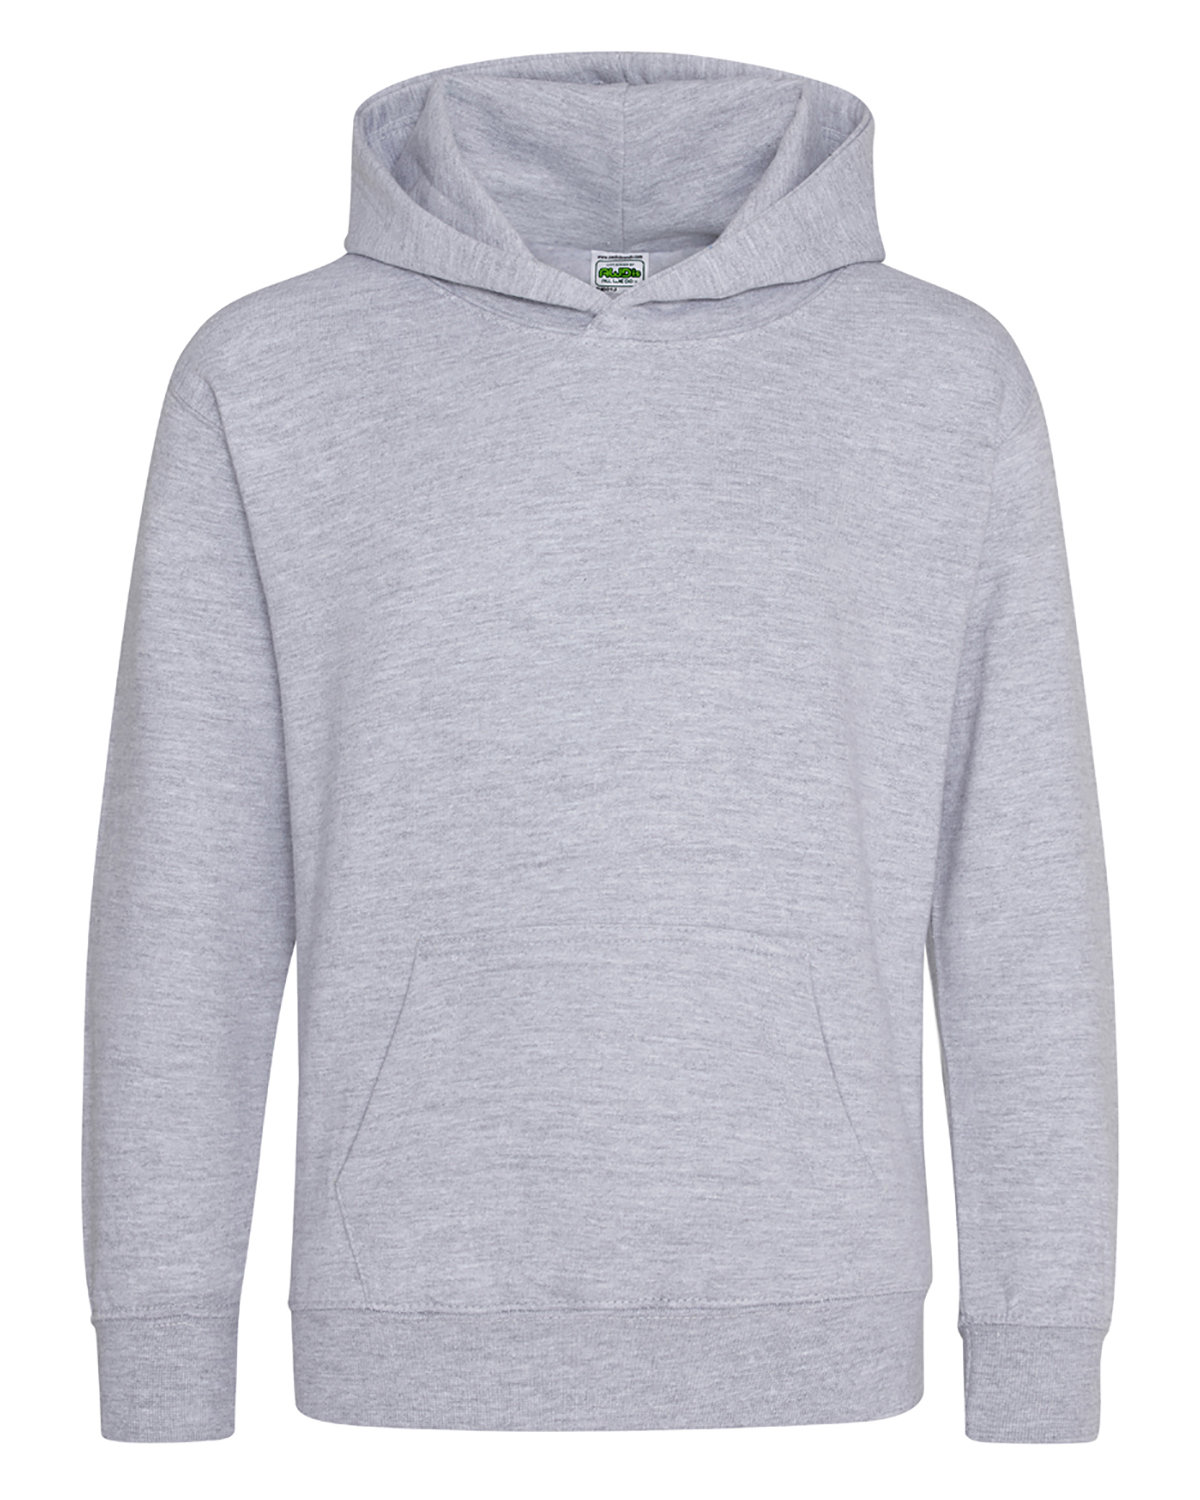 Just Hoods By AWDis Youth 80/20 Midweight College Hooded Sweatshirt HEATHER GREY